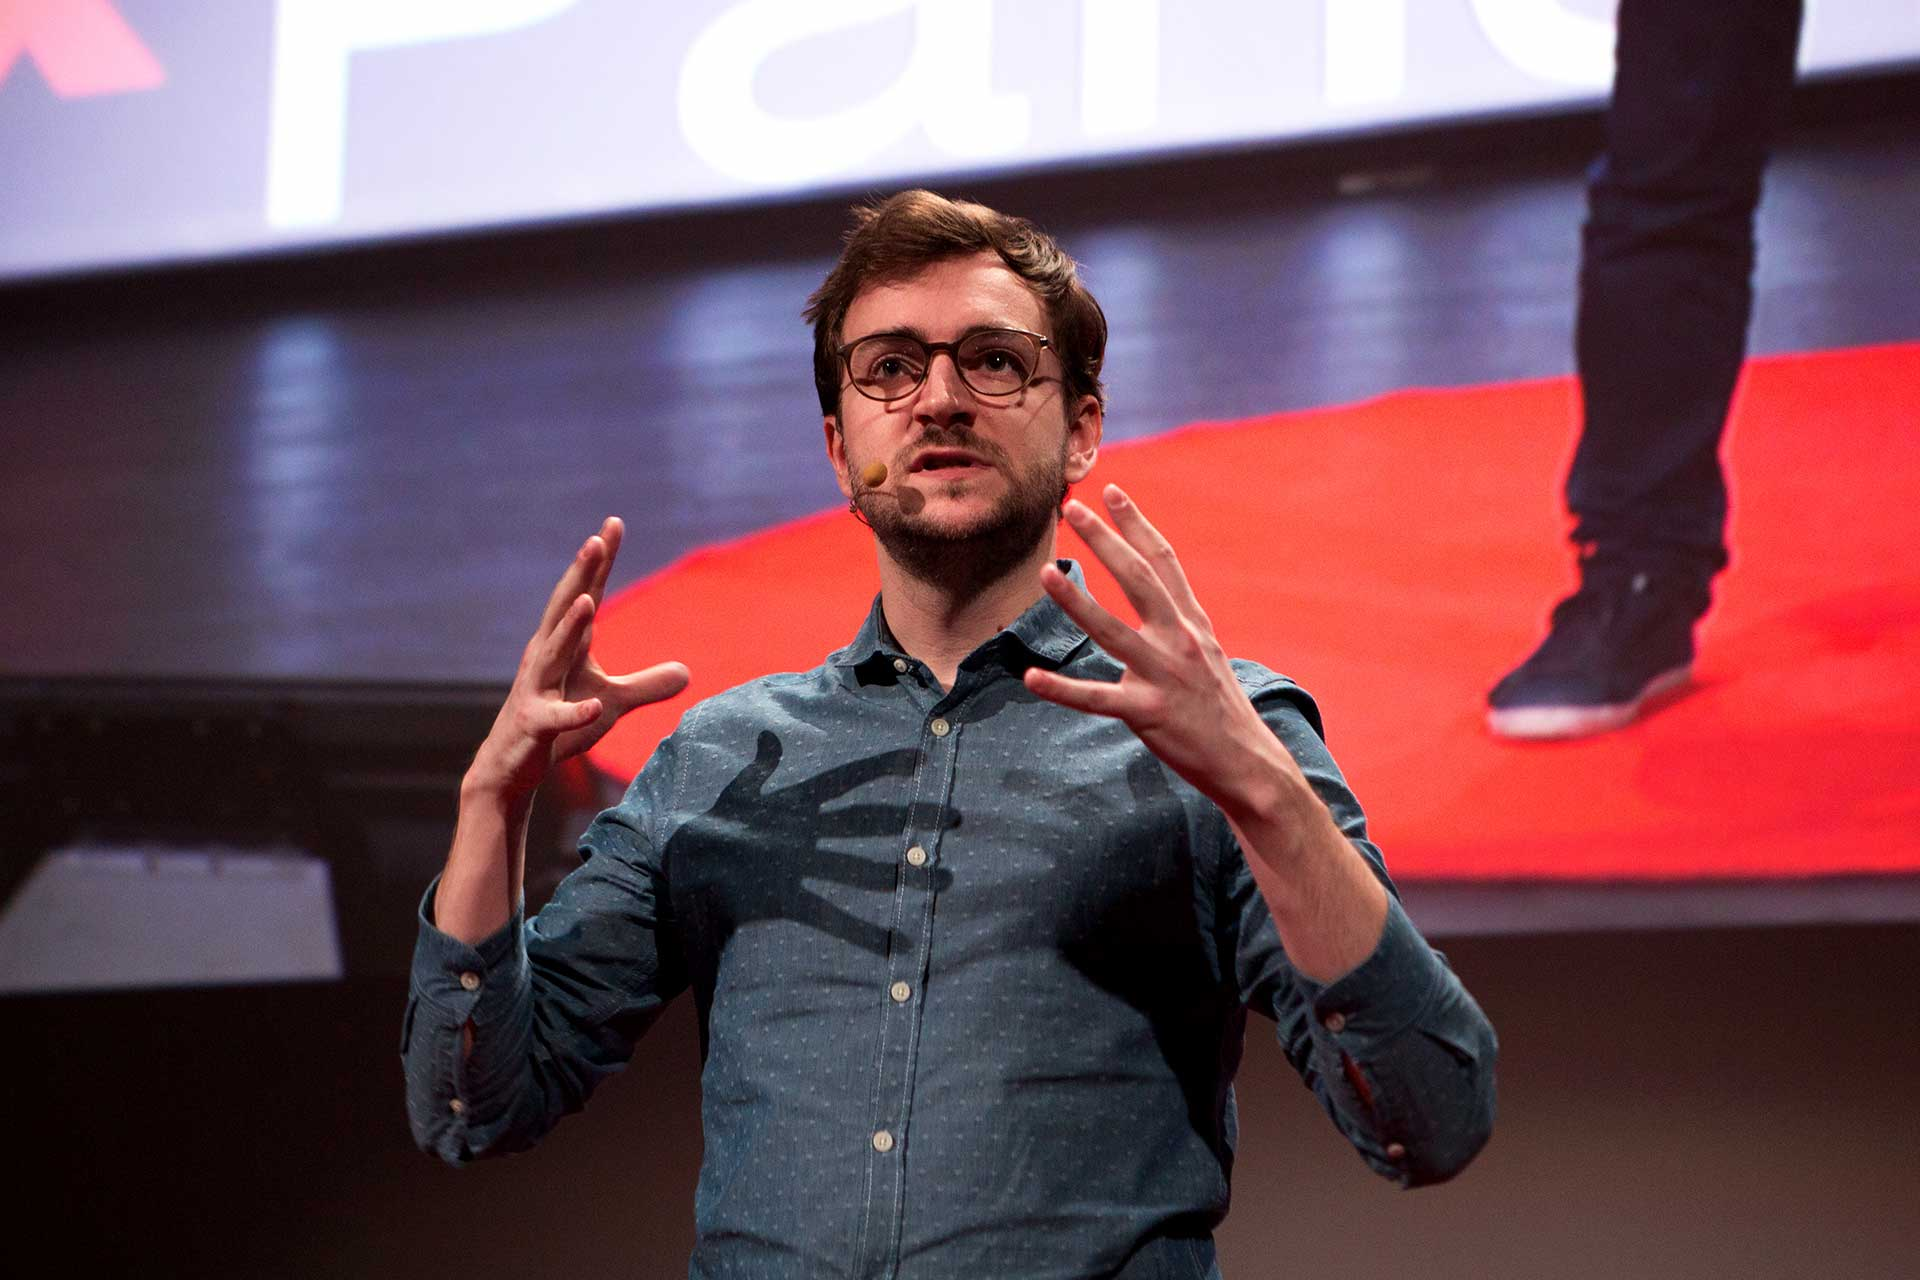 conference-TEDxParisSalon-2019-9.jpg